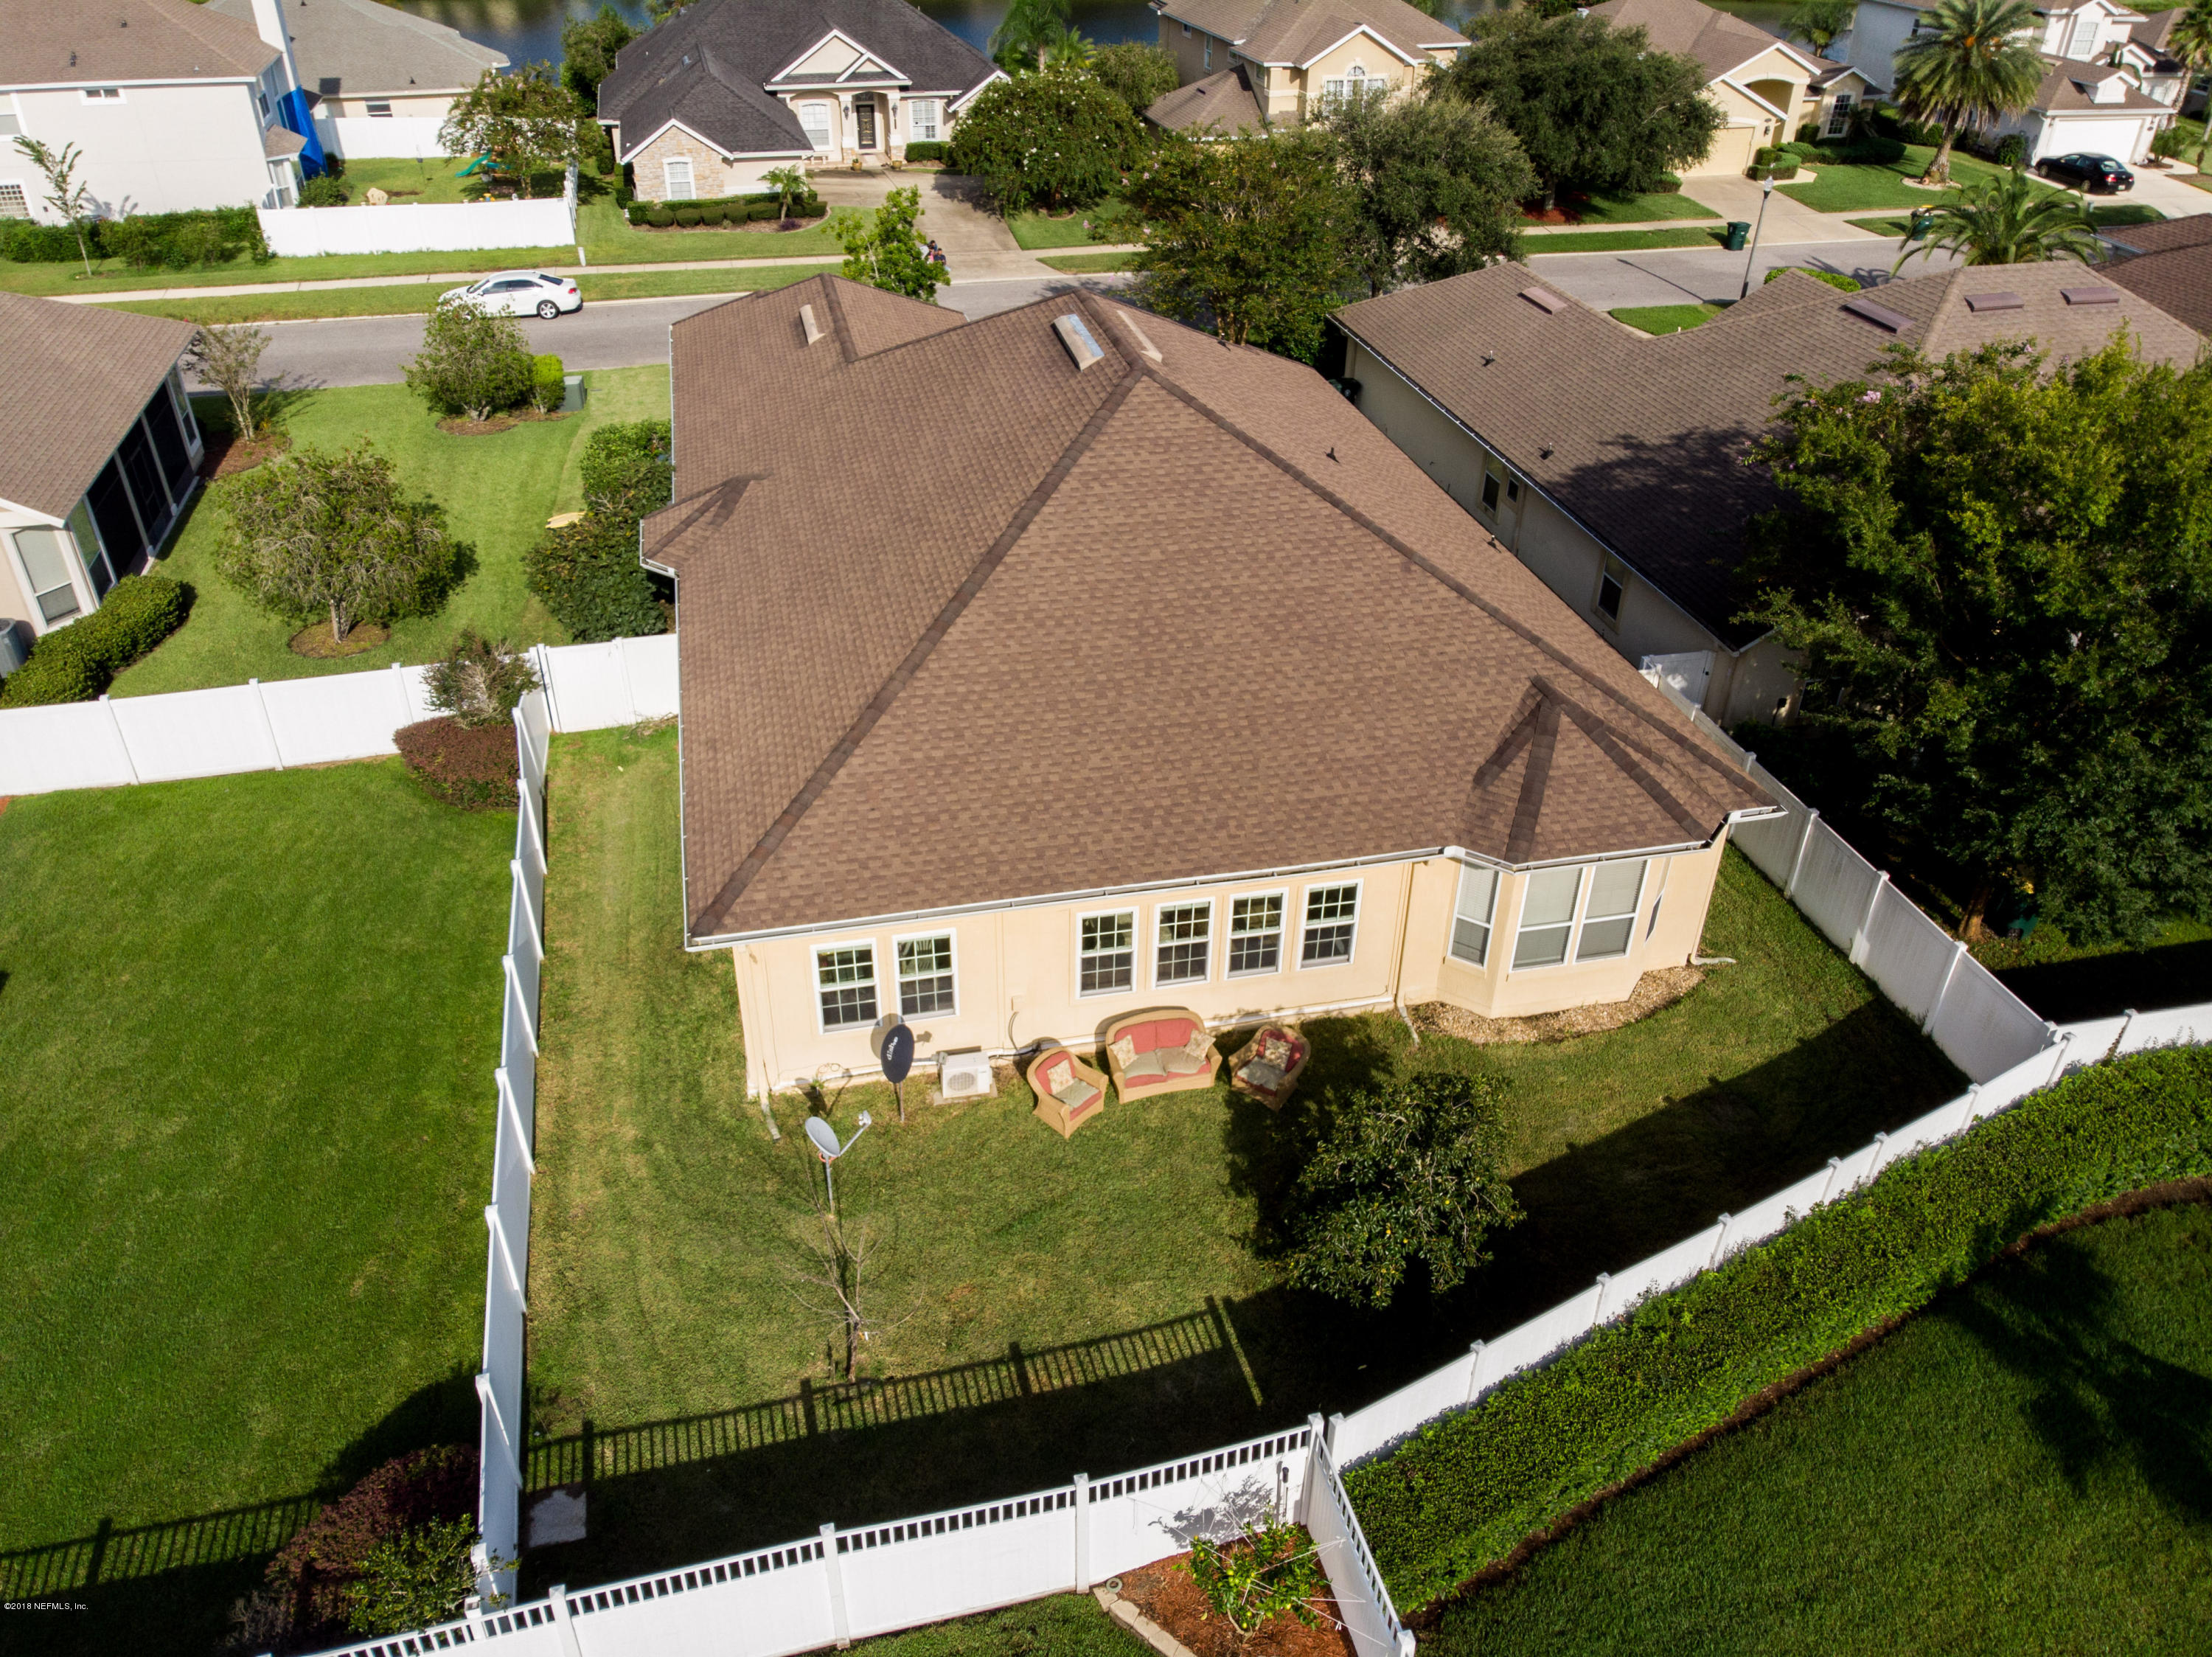 4512 SHILOH MILL, JACKSONVILLE, FLORIDA 32246, 4 Bedrooms Bedrooms, ,3 BathroomsBathrooms,Residential - single family,For sale,SHILOH MILL,953465